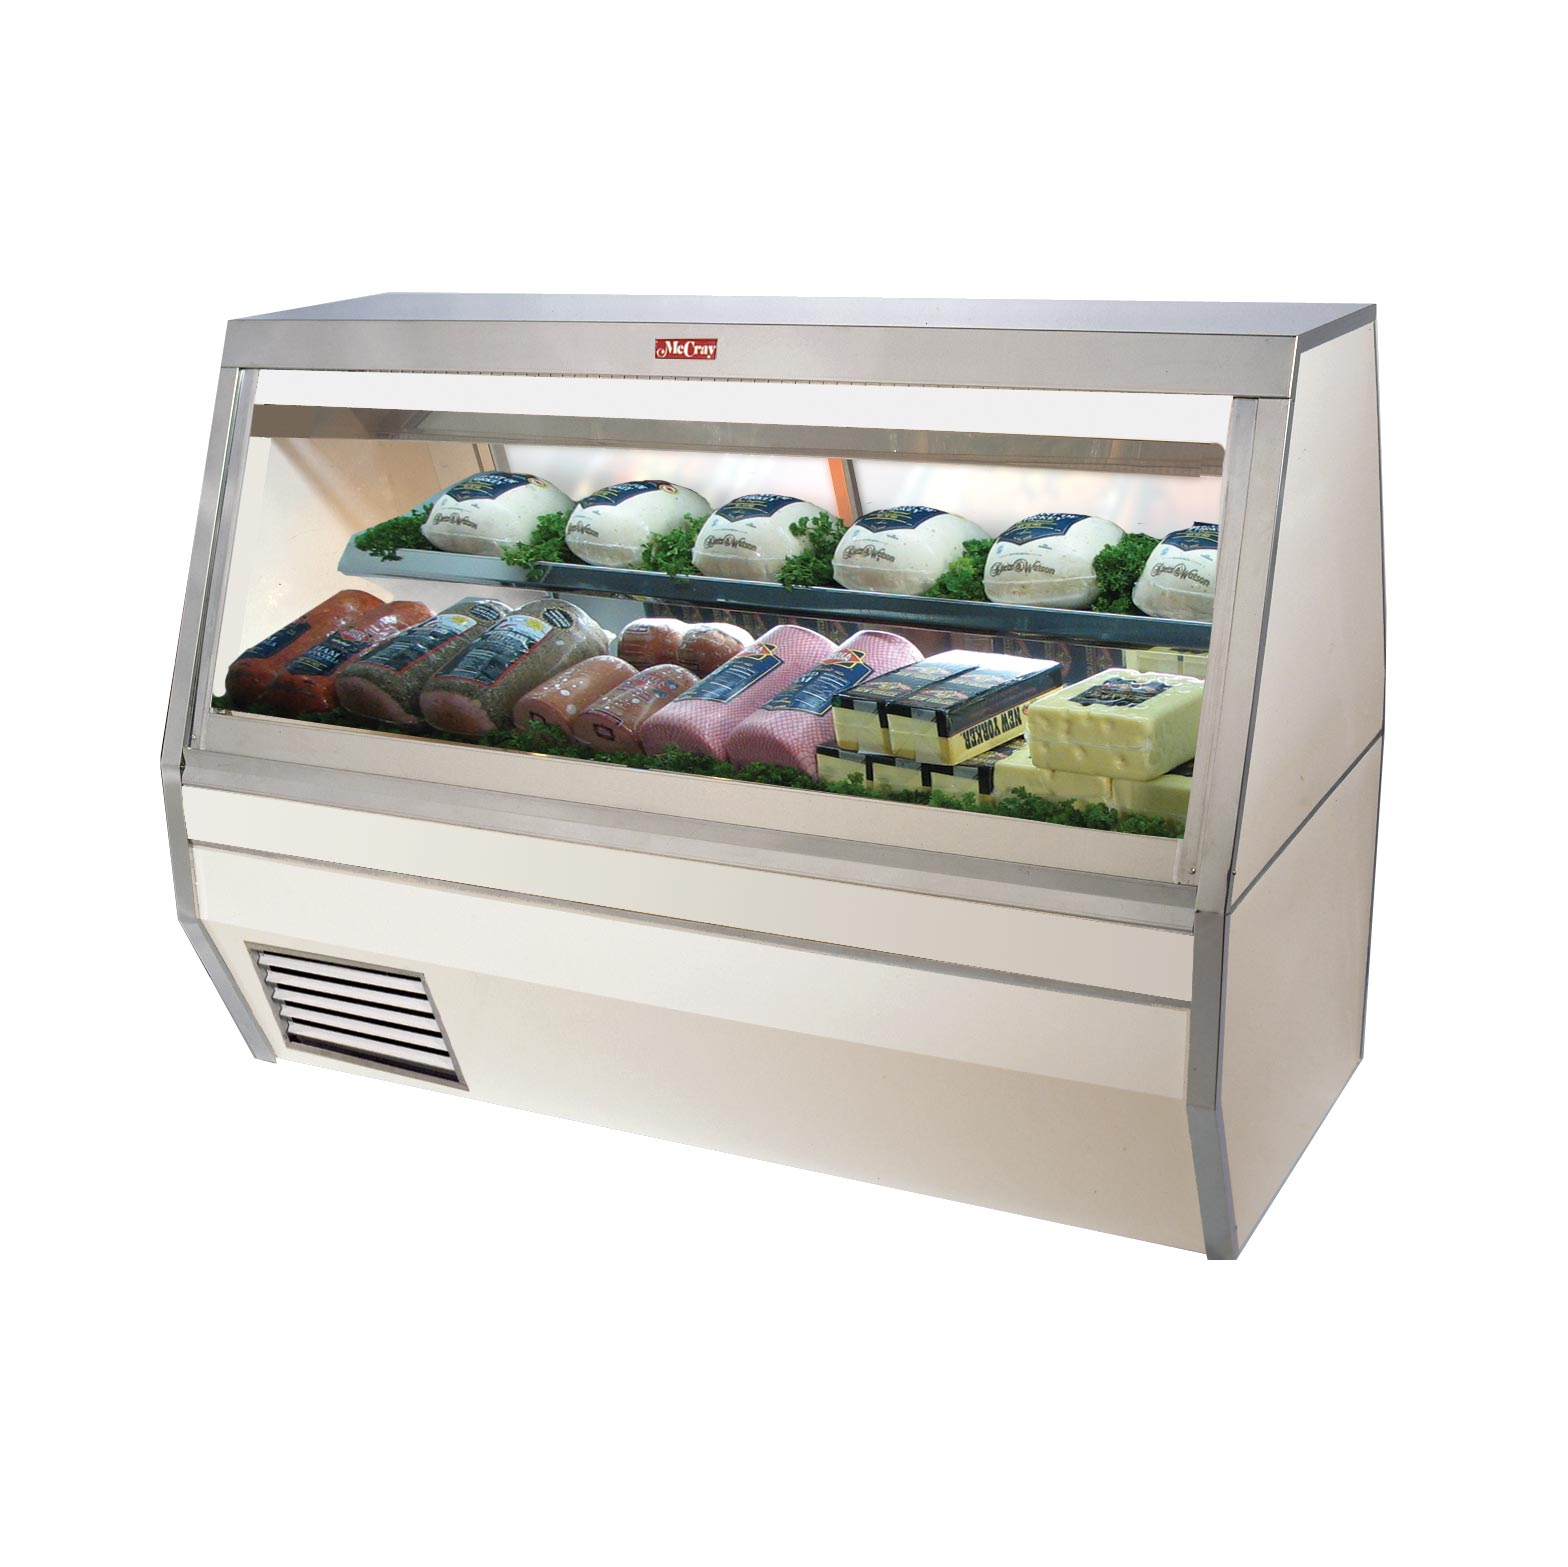 Howard-McCray SC-CDS35-4L-LED display case, refrigerated deli